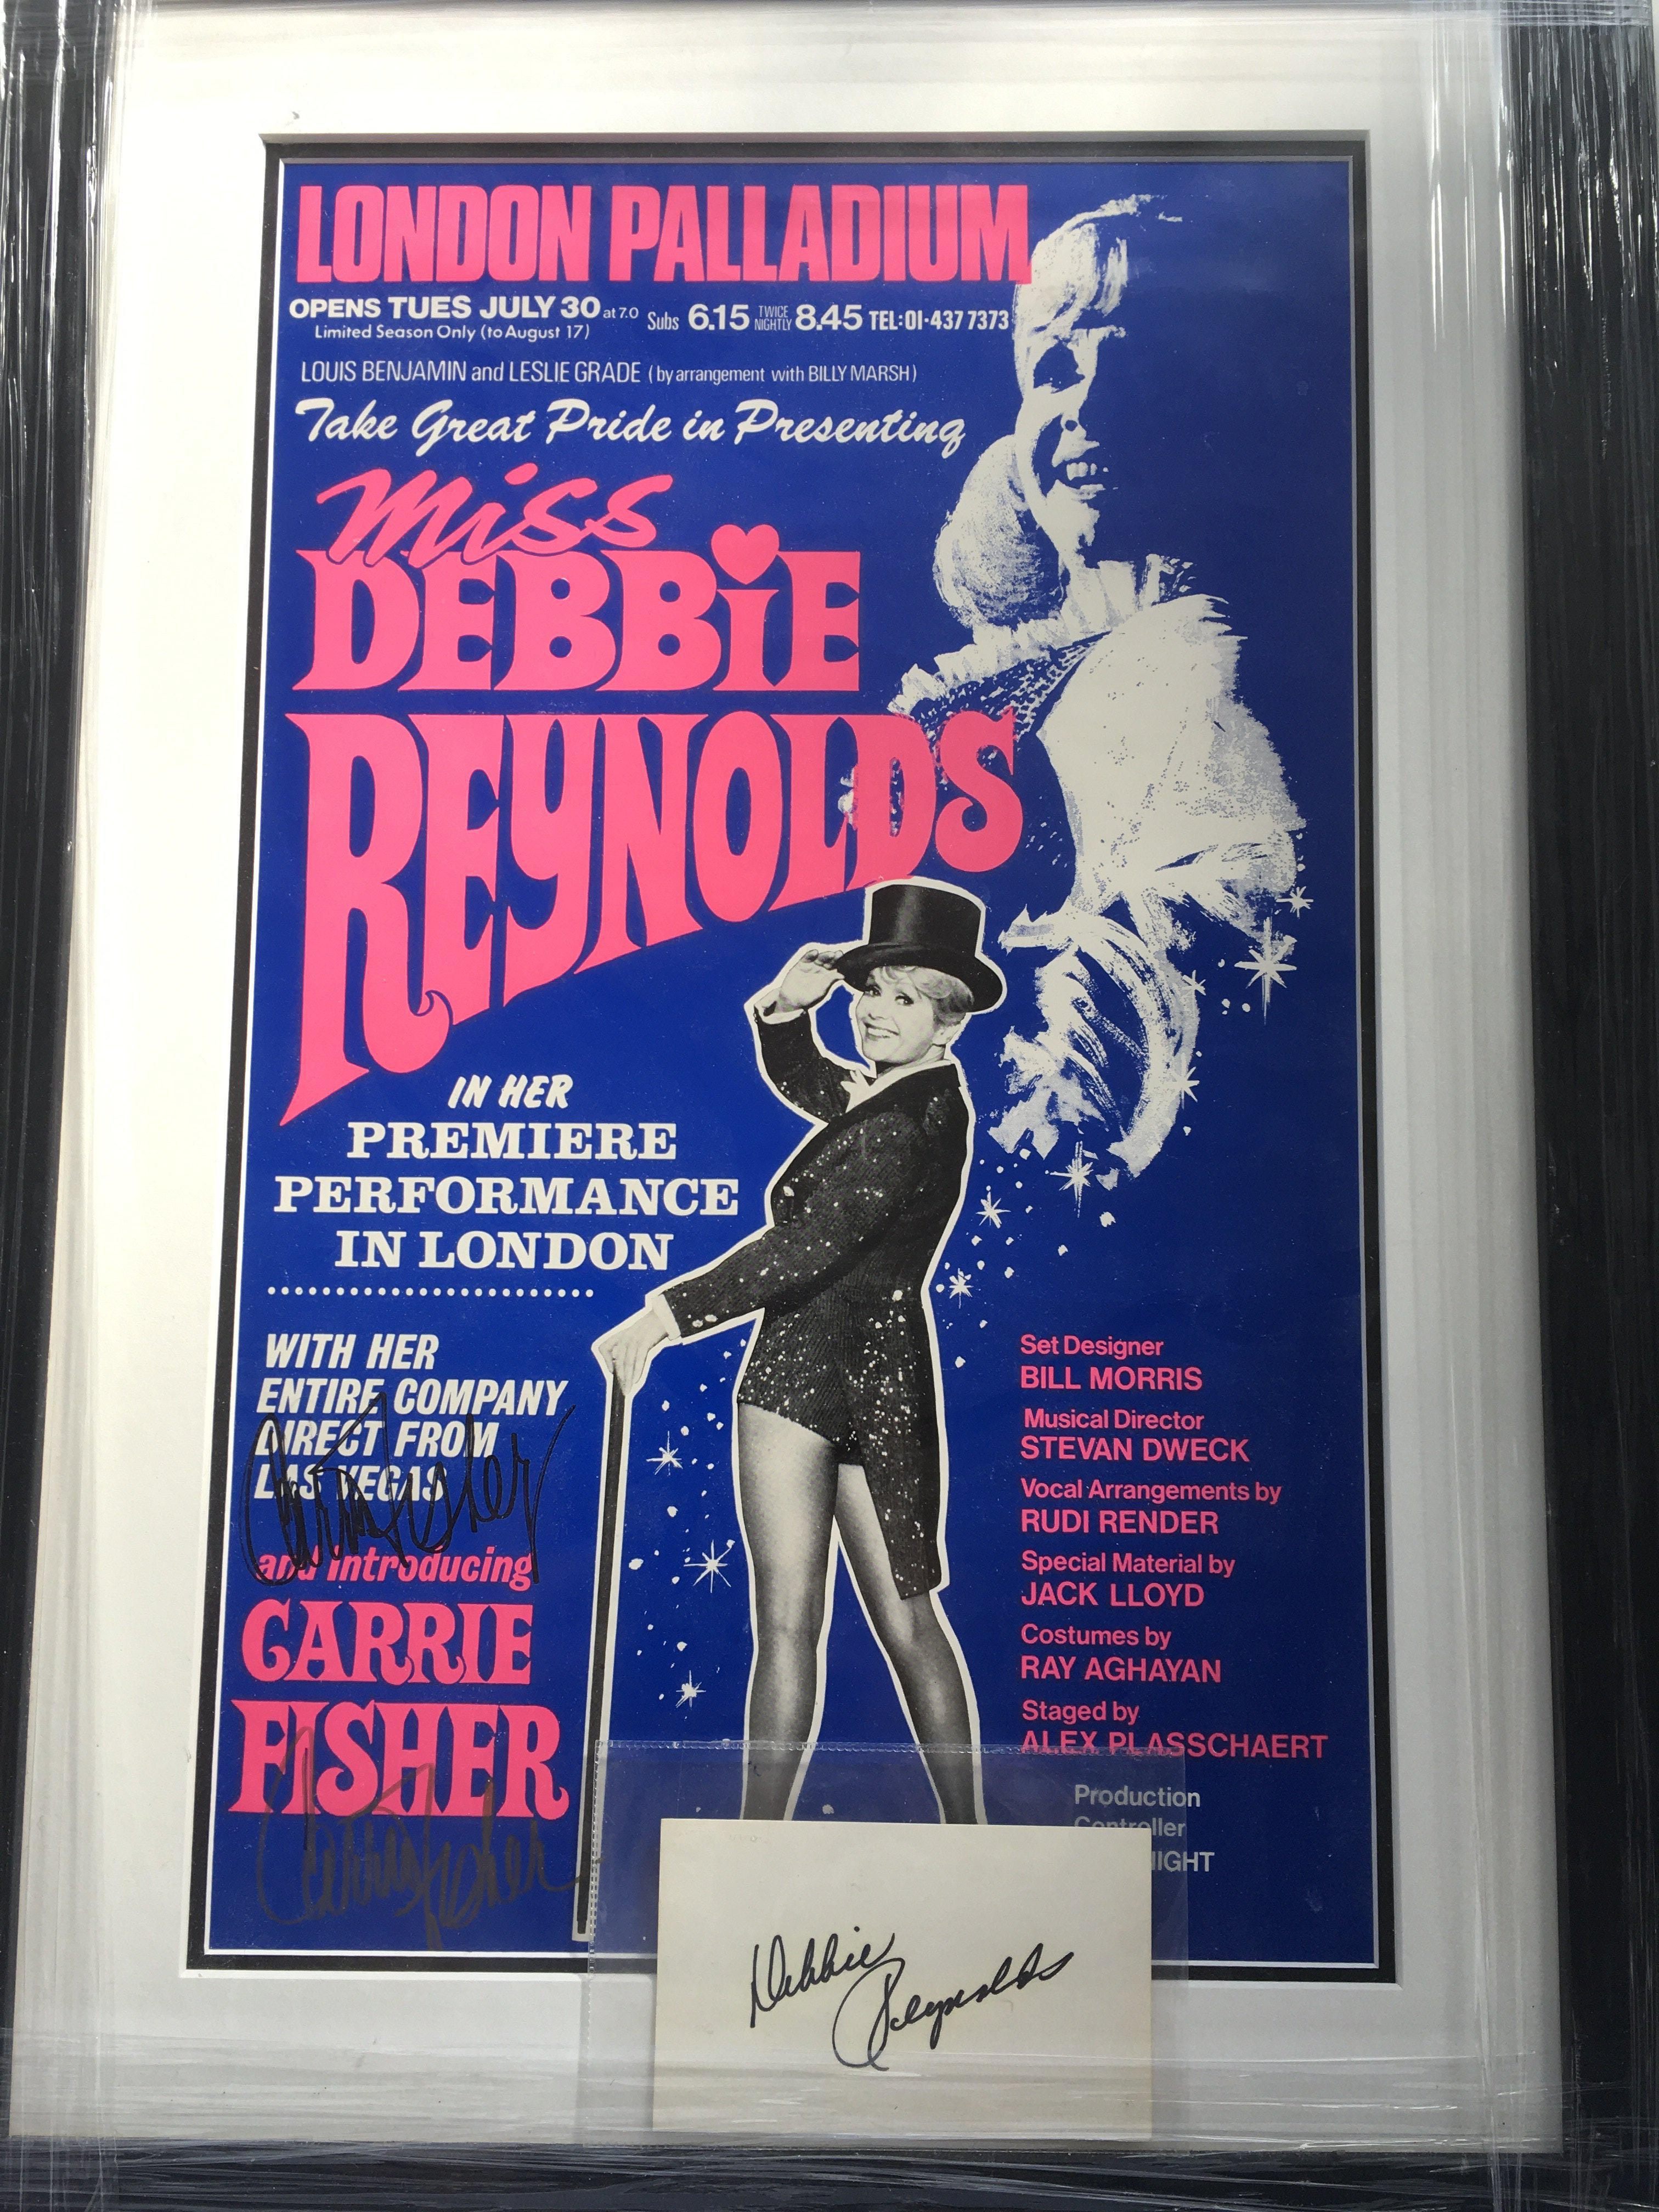 A framed and glazed signed poster for a performanc